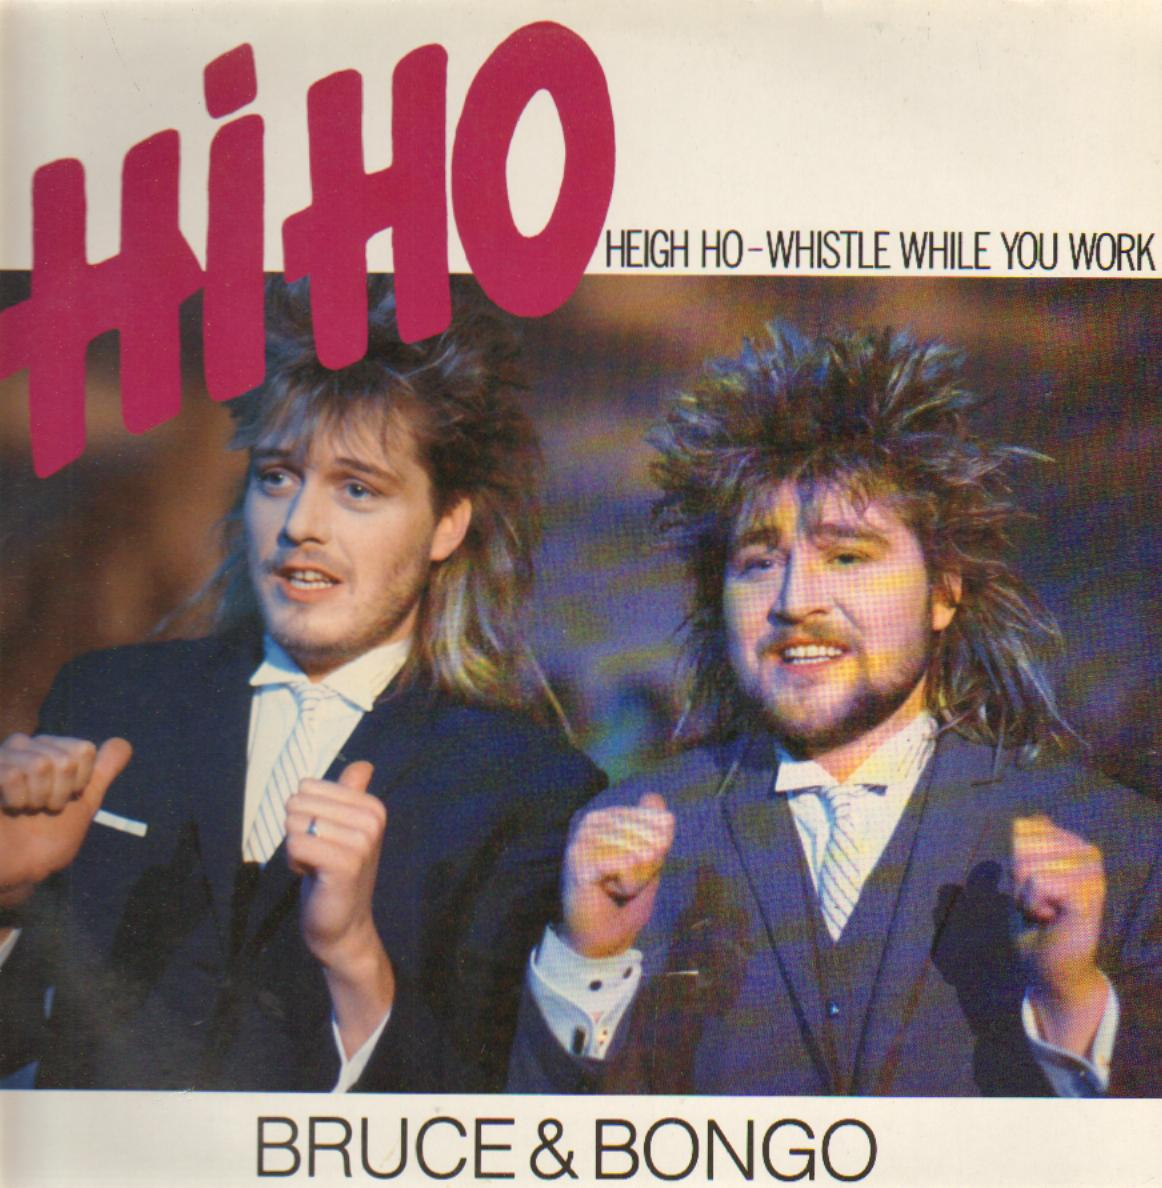 bruce___bongo-hi_ho_(heigh_ho_-_whistle_while_you_work)